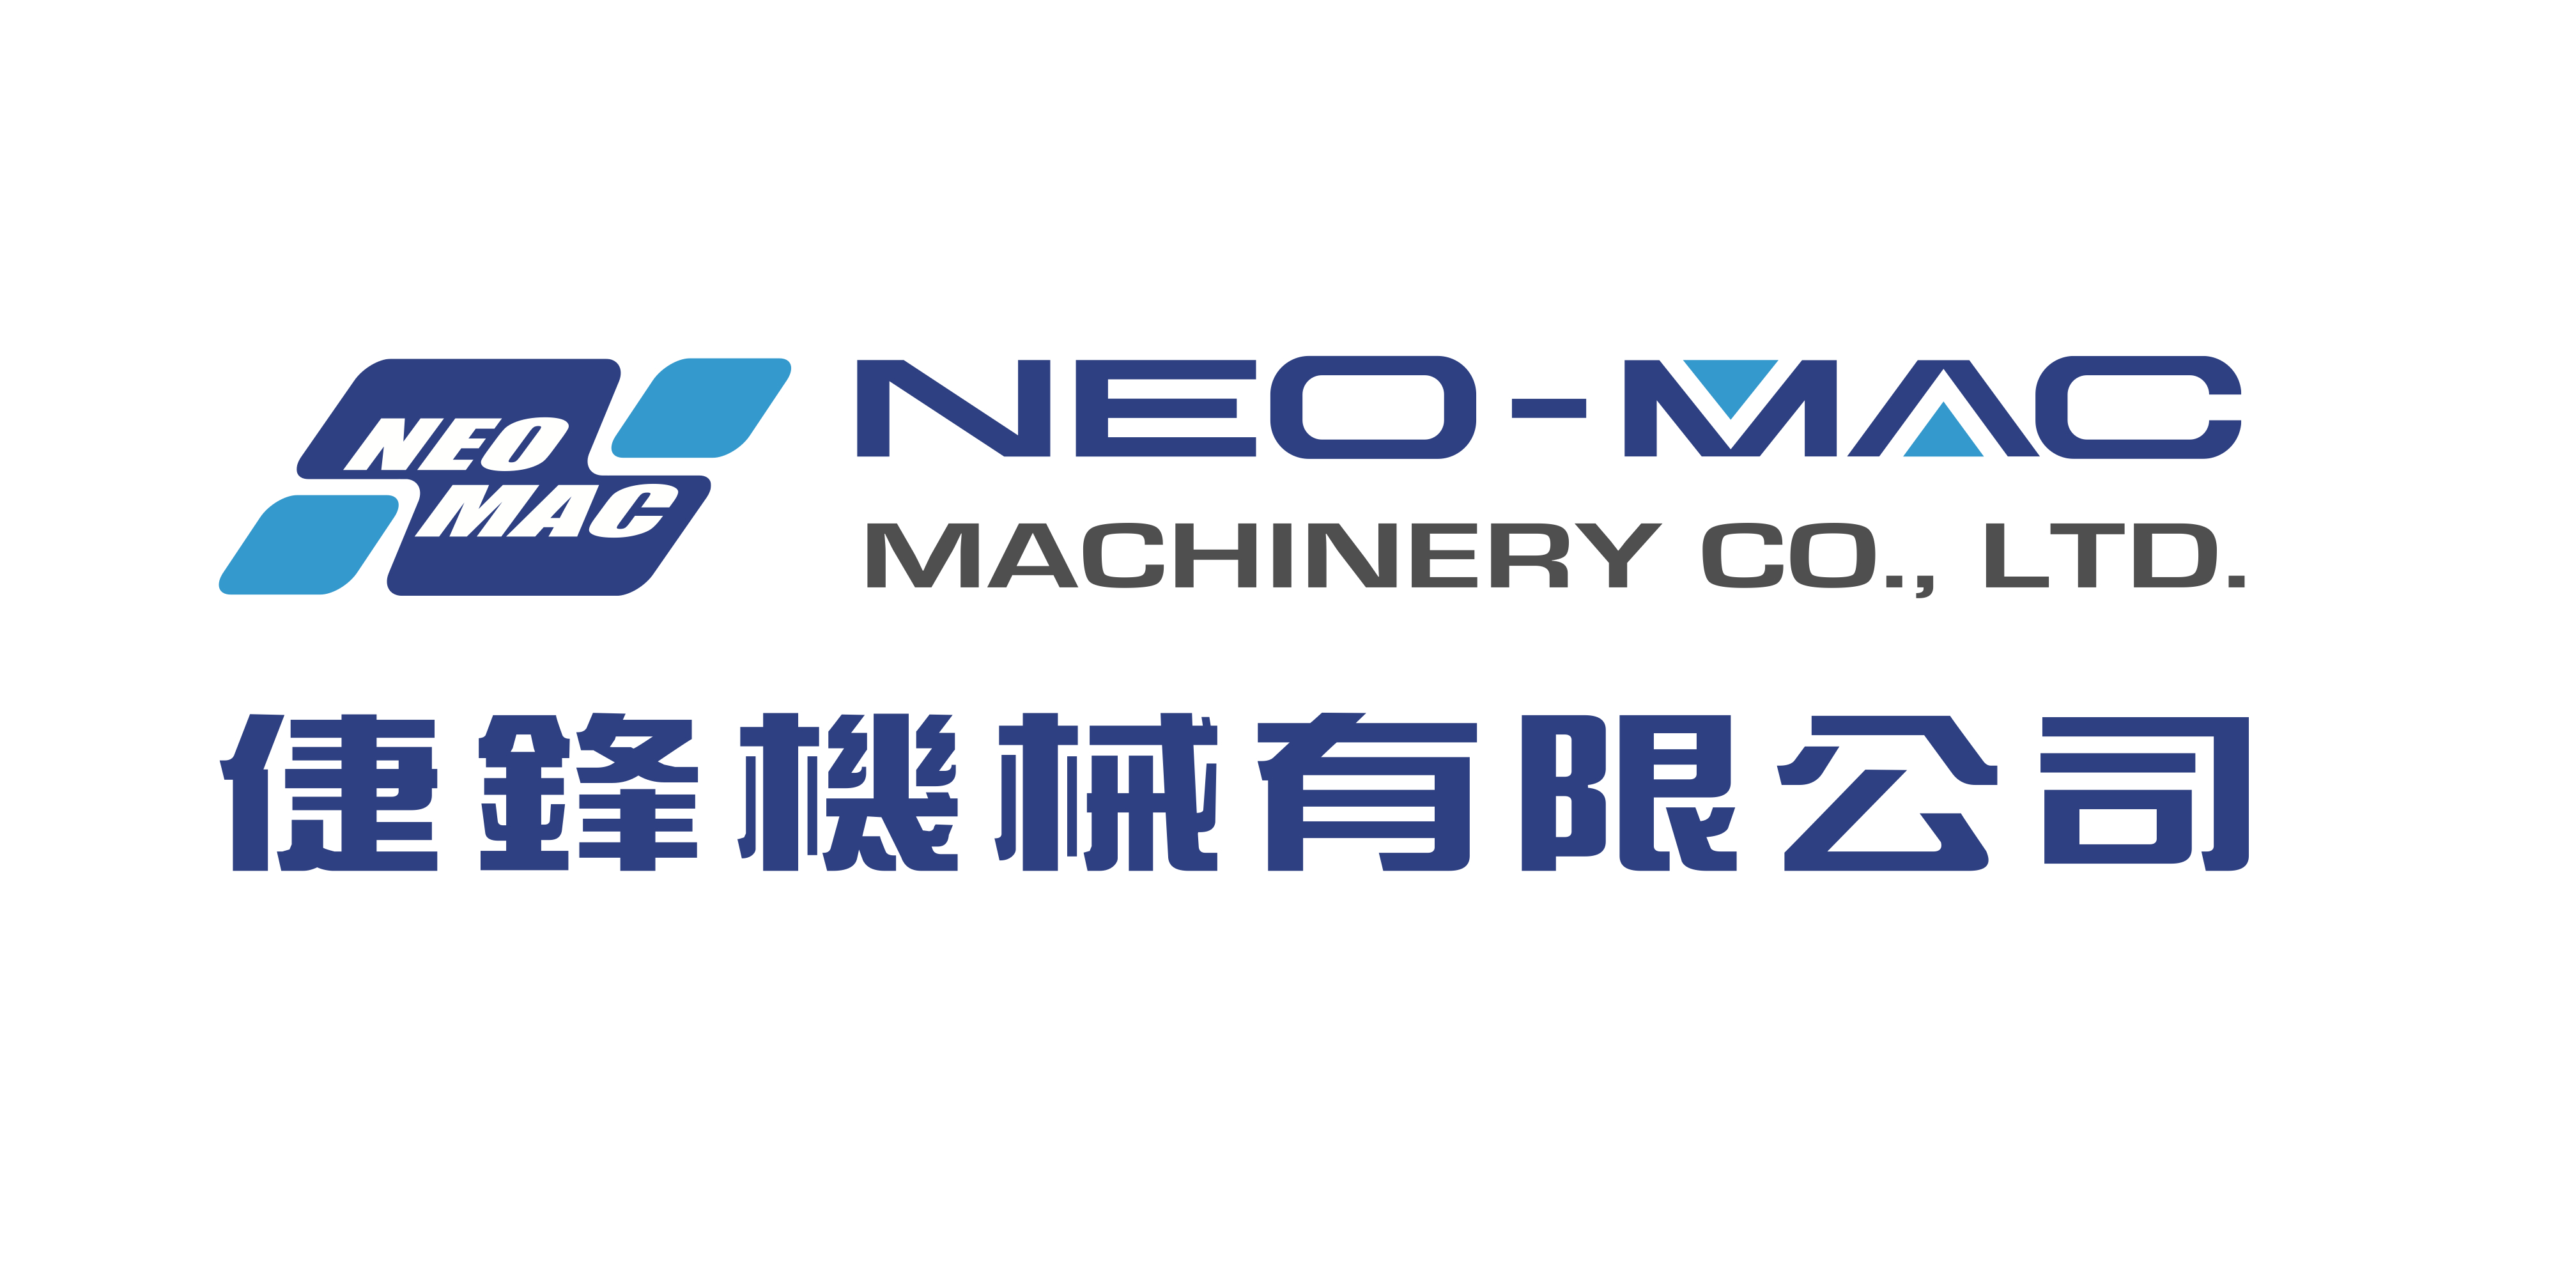 NEO-MAC MACHINERY CO., LTD.